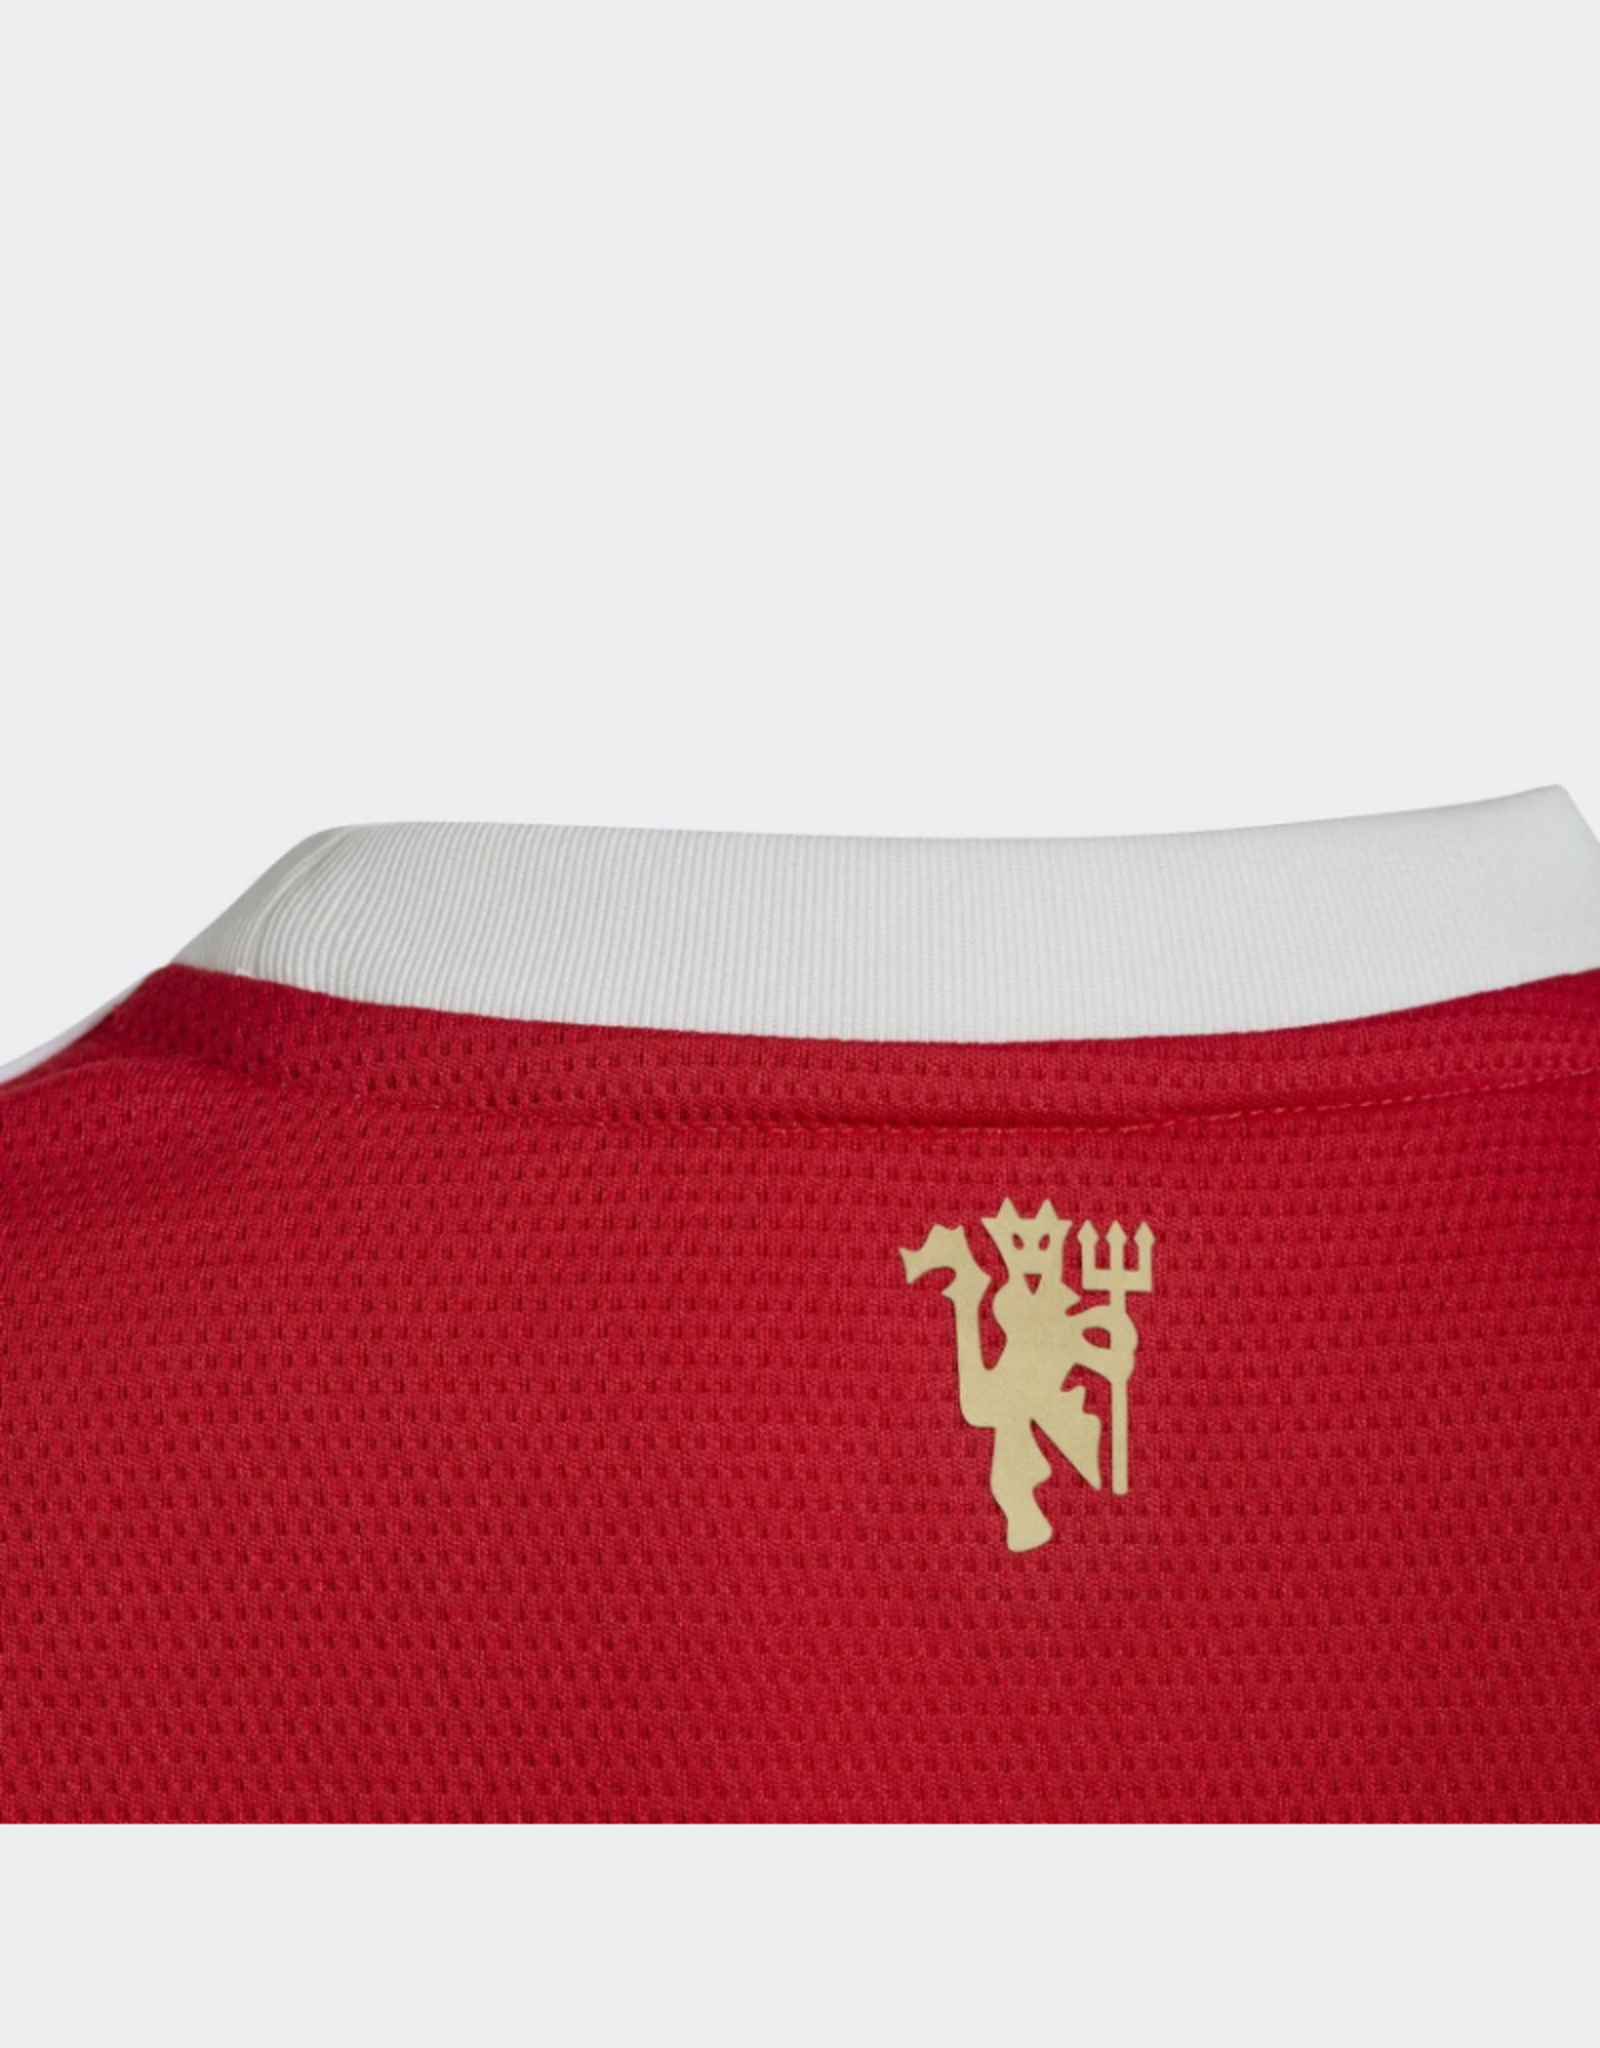 Adidas Adidas Men's '21 Soccer Jersey Manchester United Red